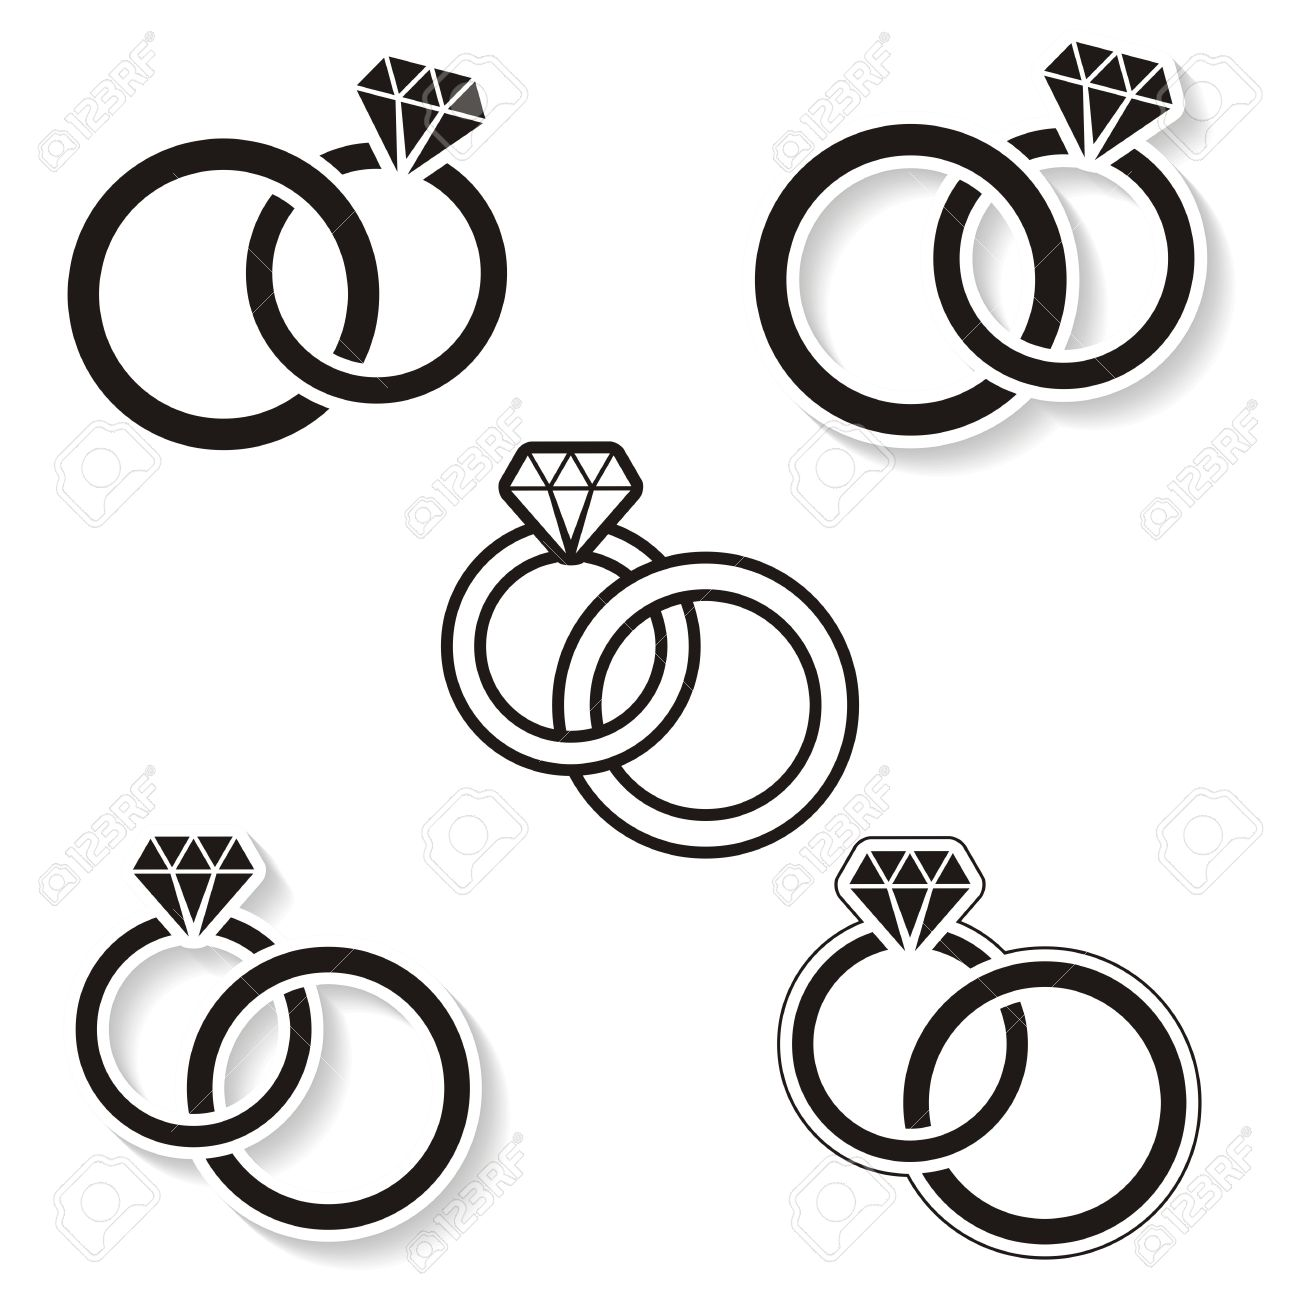 Free Wedding Rings Clipart Black and White Best Black & White, The.